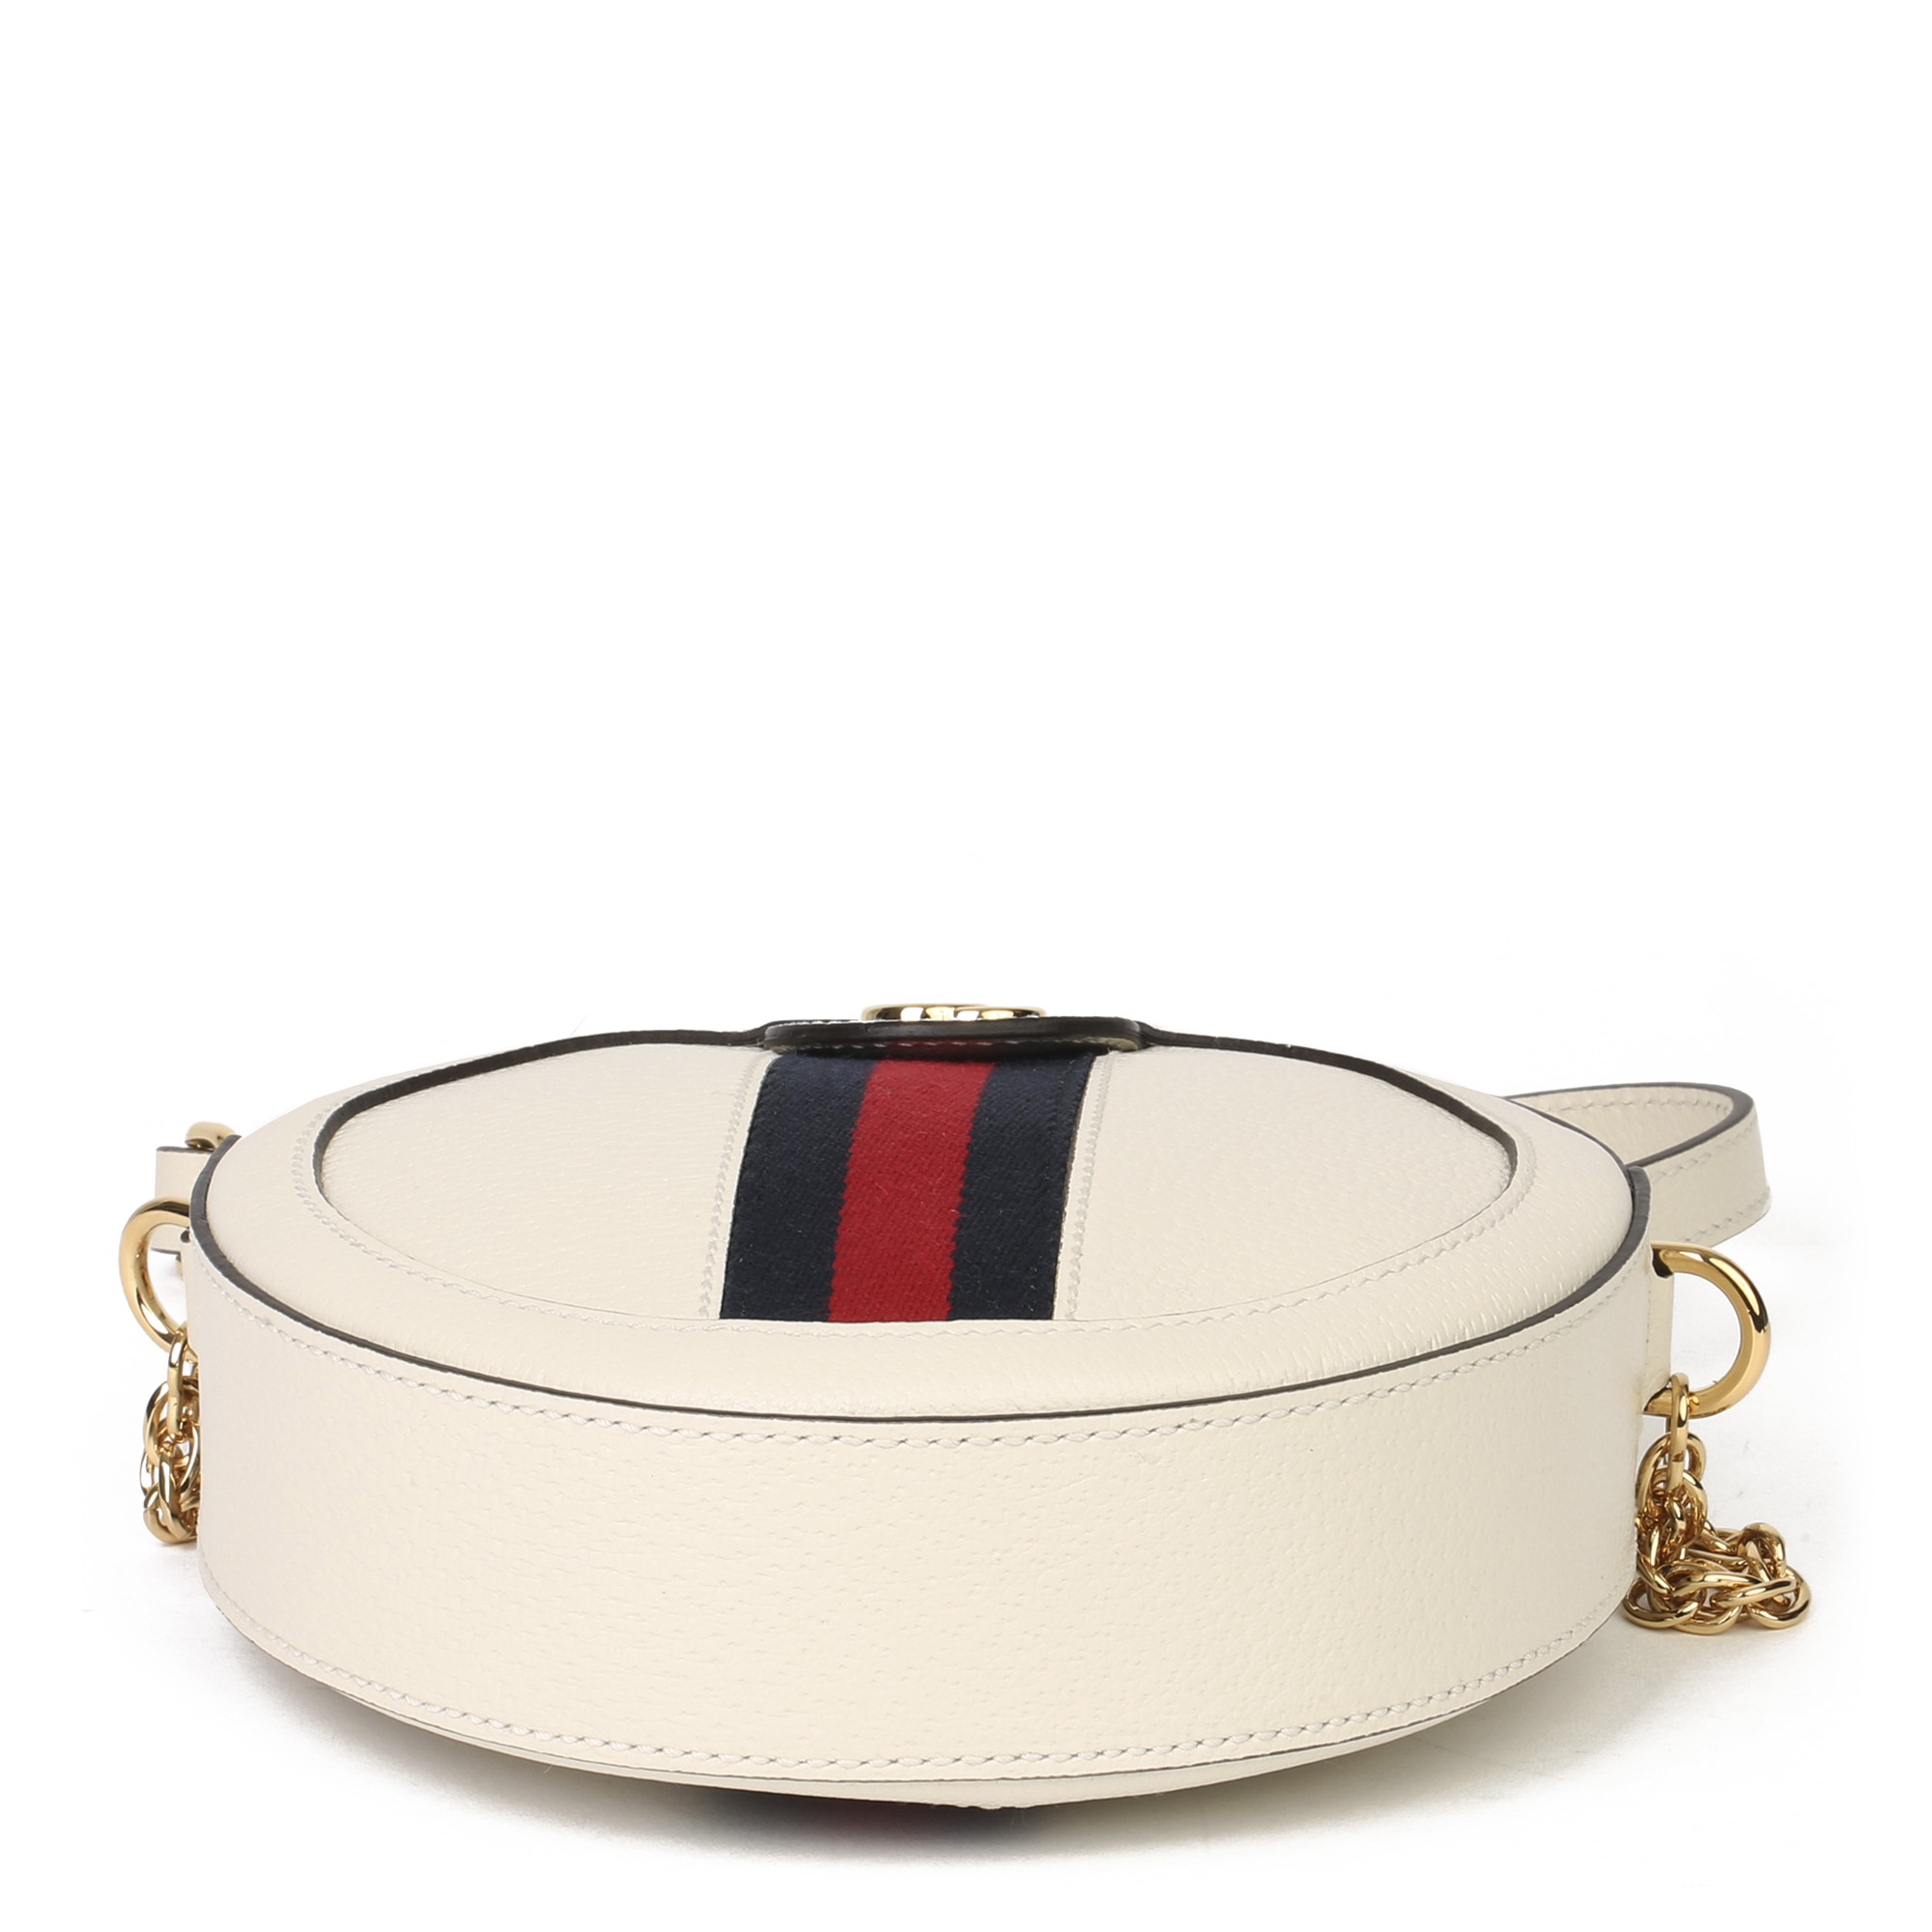 Gucci White Pigskin Leather Web Mini Round Orphidia Shoulder Bag - Image 8 of 11